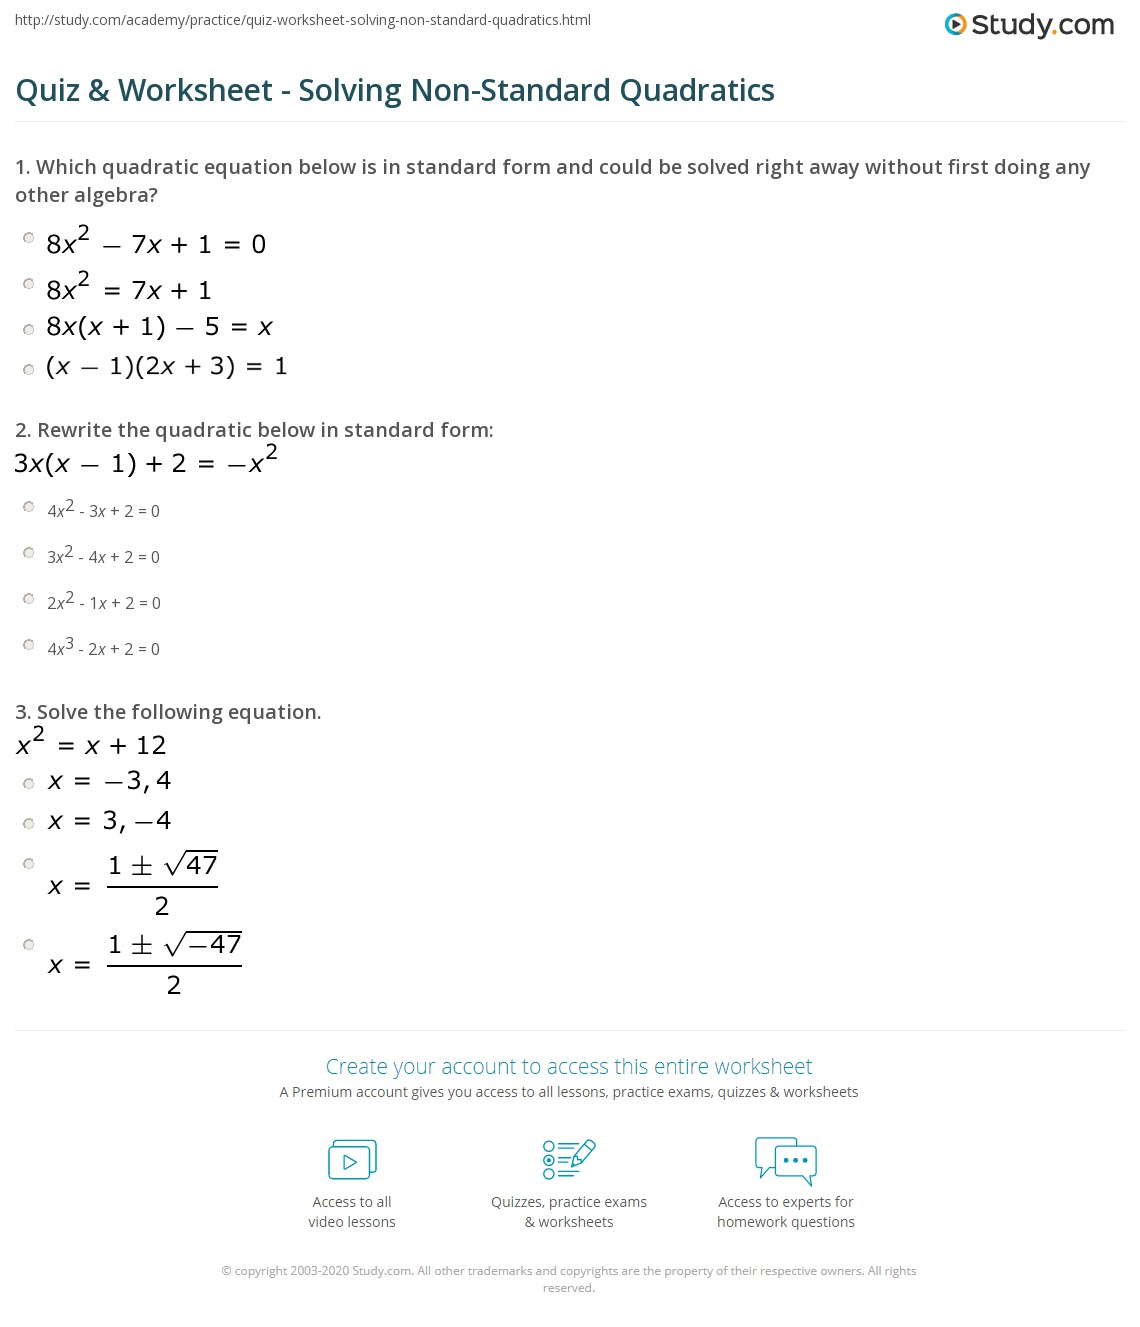 quiz & worksheet - solving non-standard quadratics | study